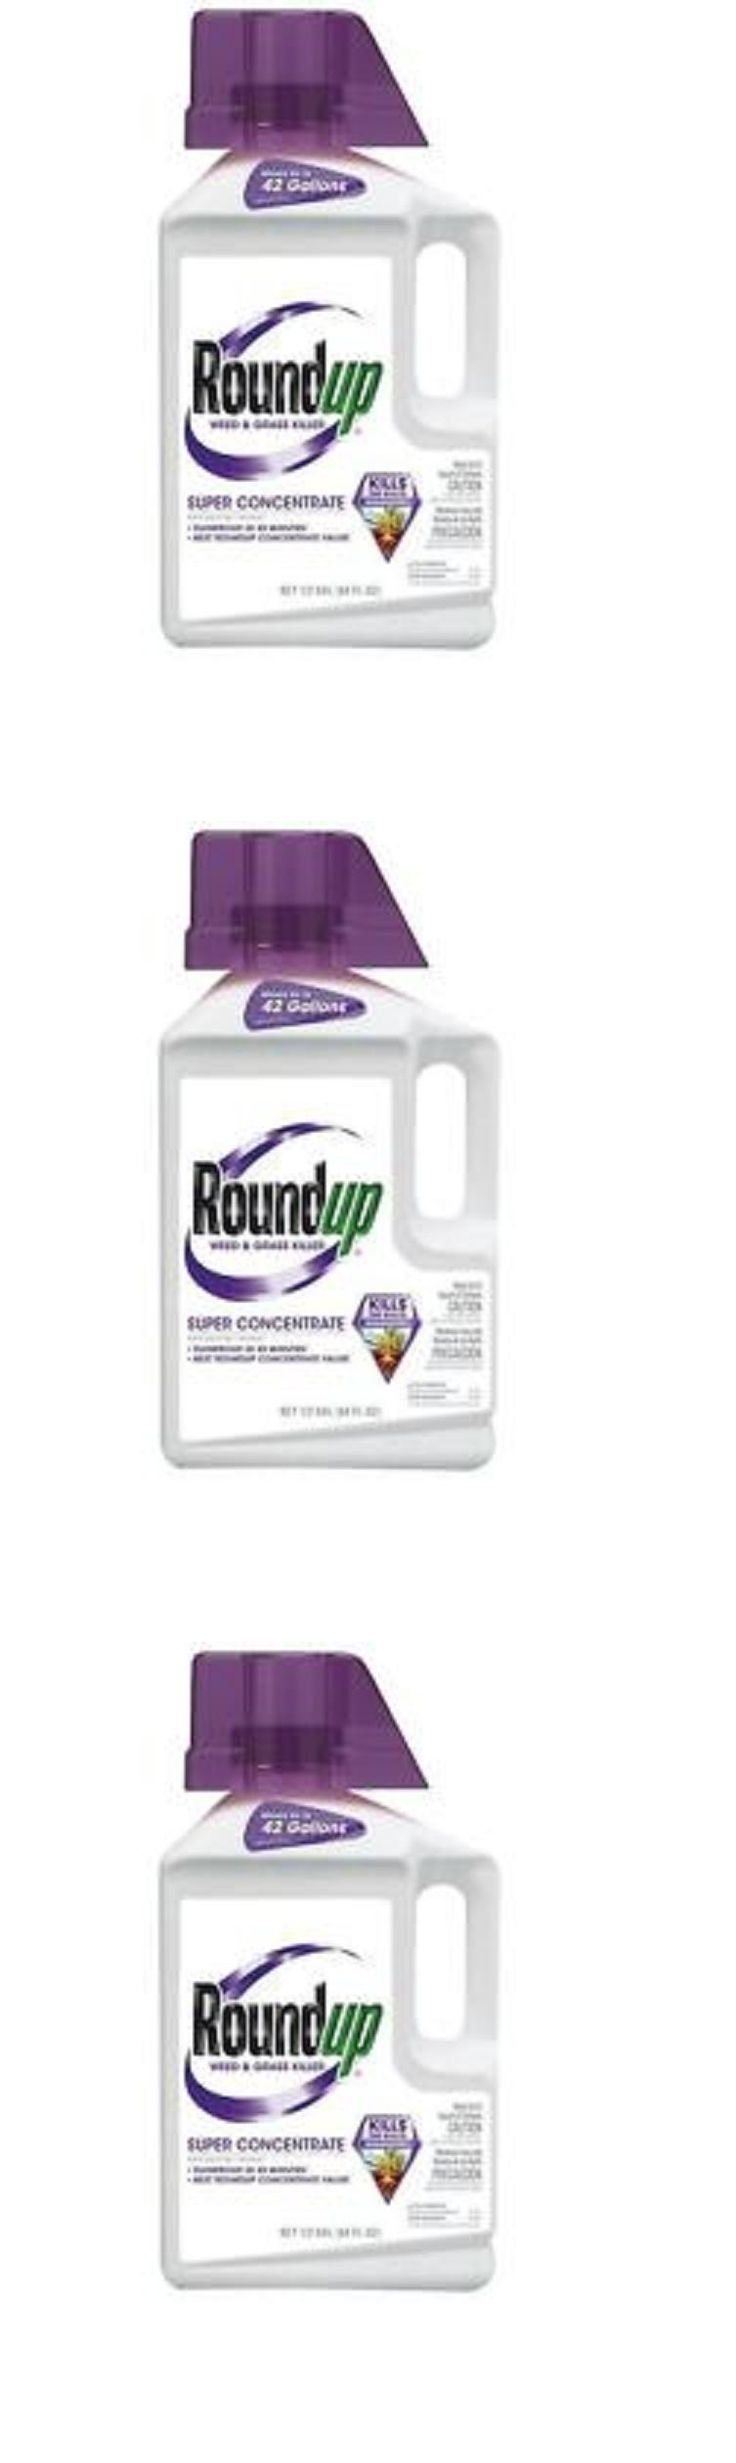 Weed Preventers 181050: Scotts Ortho 35.2 Oz, Roundup Super Concentrate Weed And Grass Killer 5100710 -> BUY IT NOW ONLY: $59.49 on eBay!